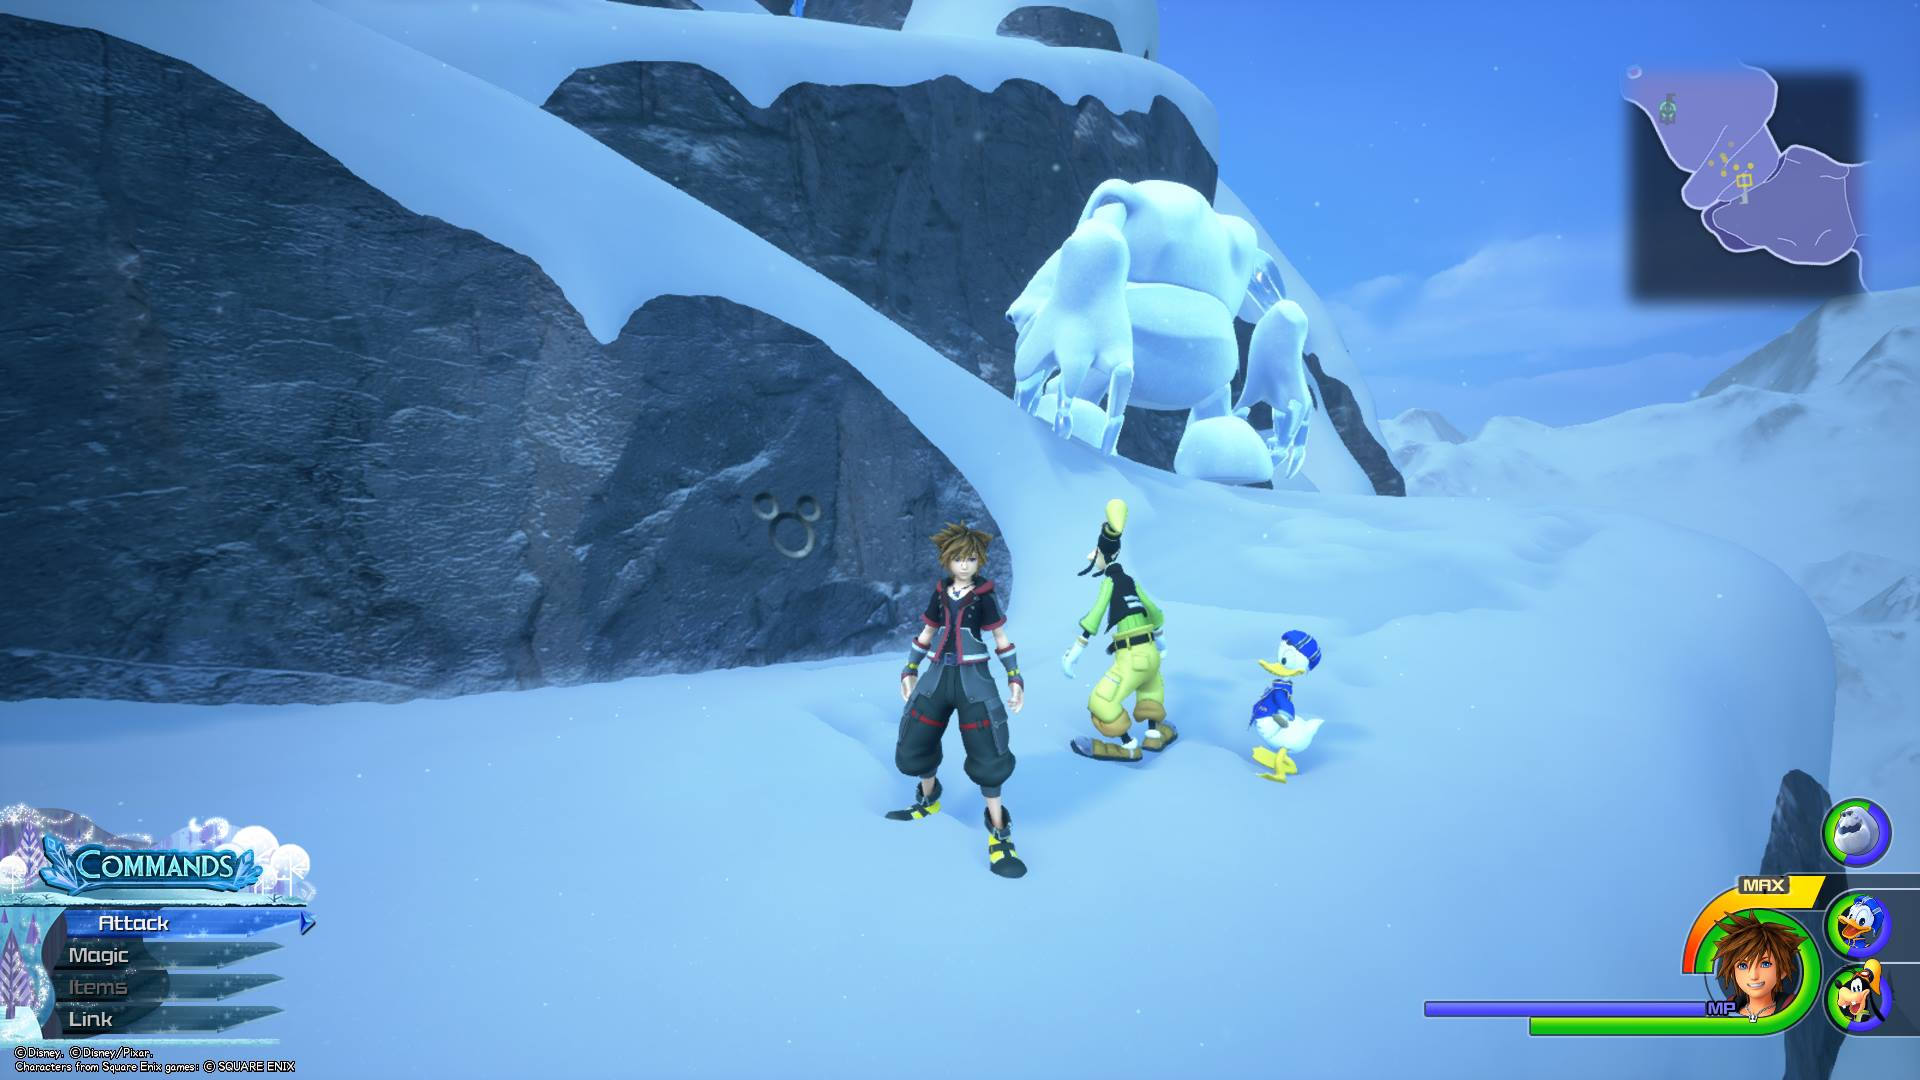 Spawn in at Mountain Ridge, then jump over the side of the cliff and head past three small hills to find the fourth Lucky Emblem in Arendelle.